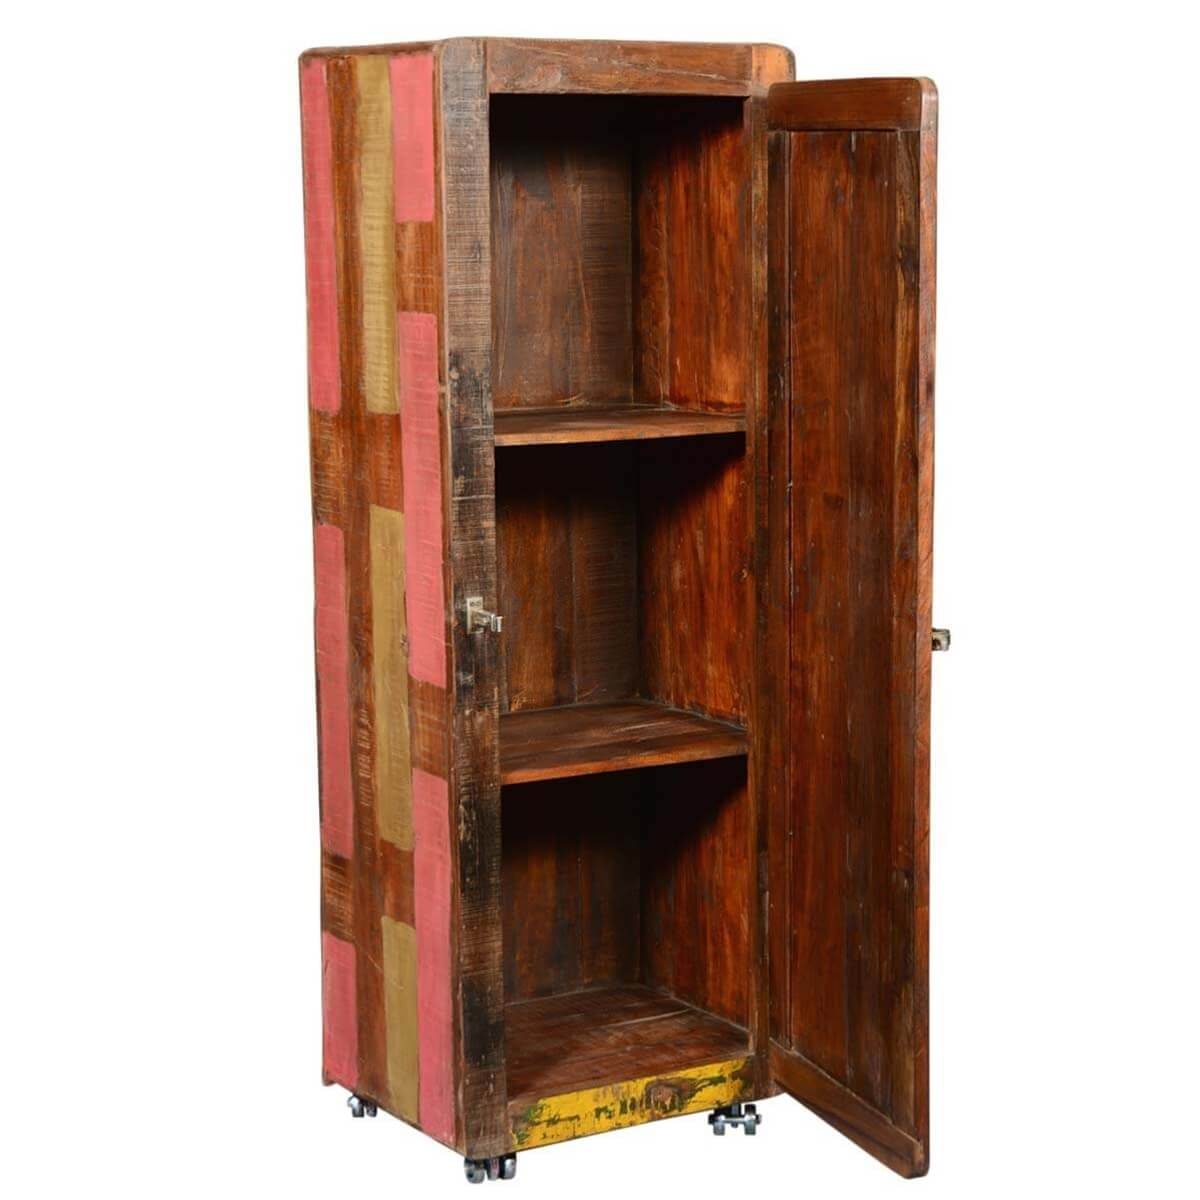 clewiston rustic reclaimed wood rolling wheels tall storage cabinet. Black Bedroom Furniture Sets. Home Design Ideas